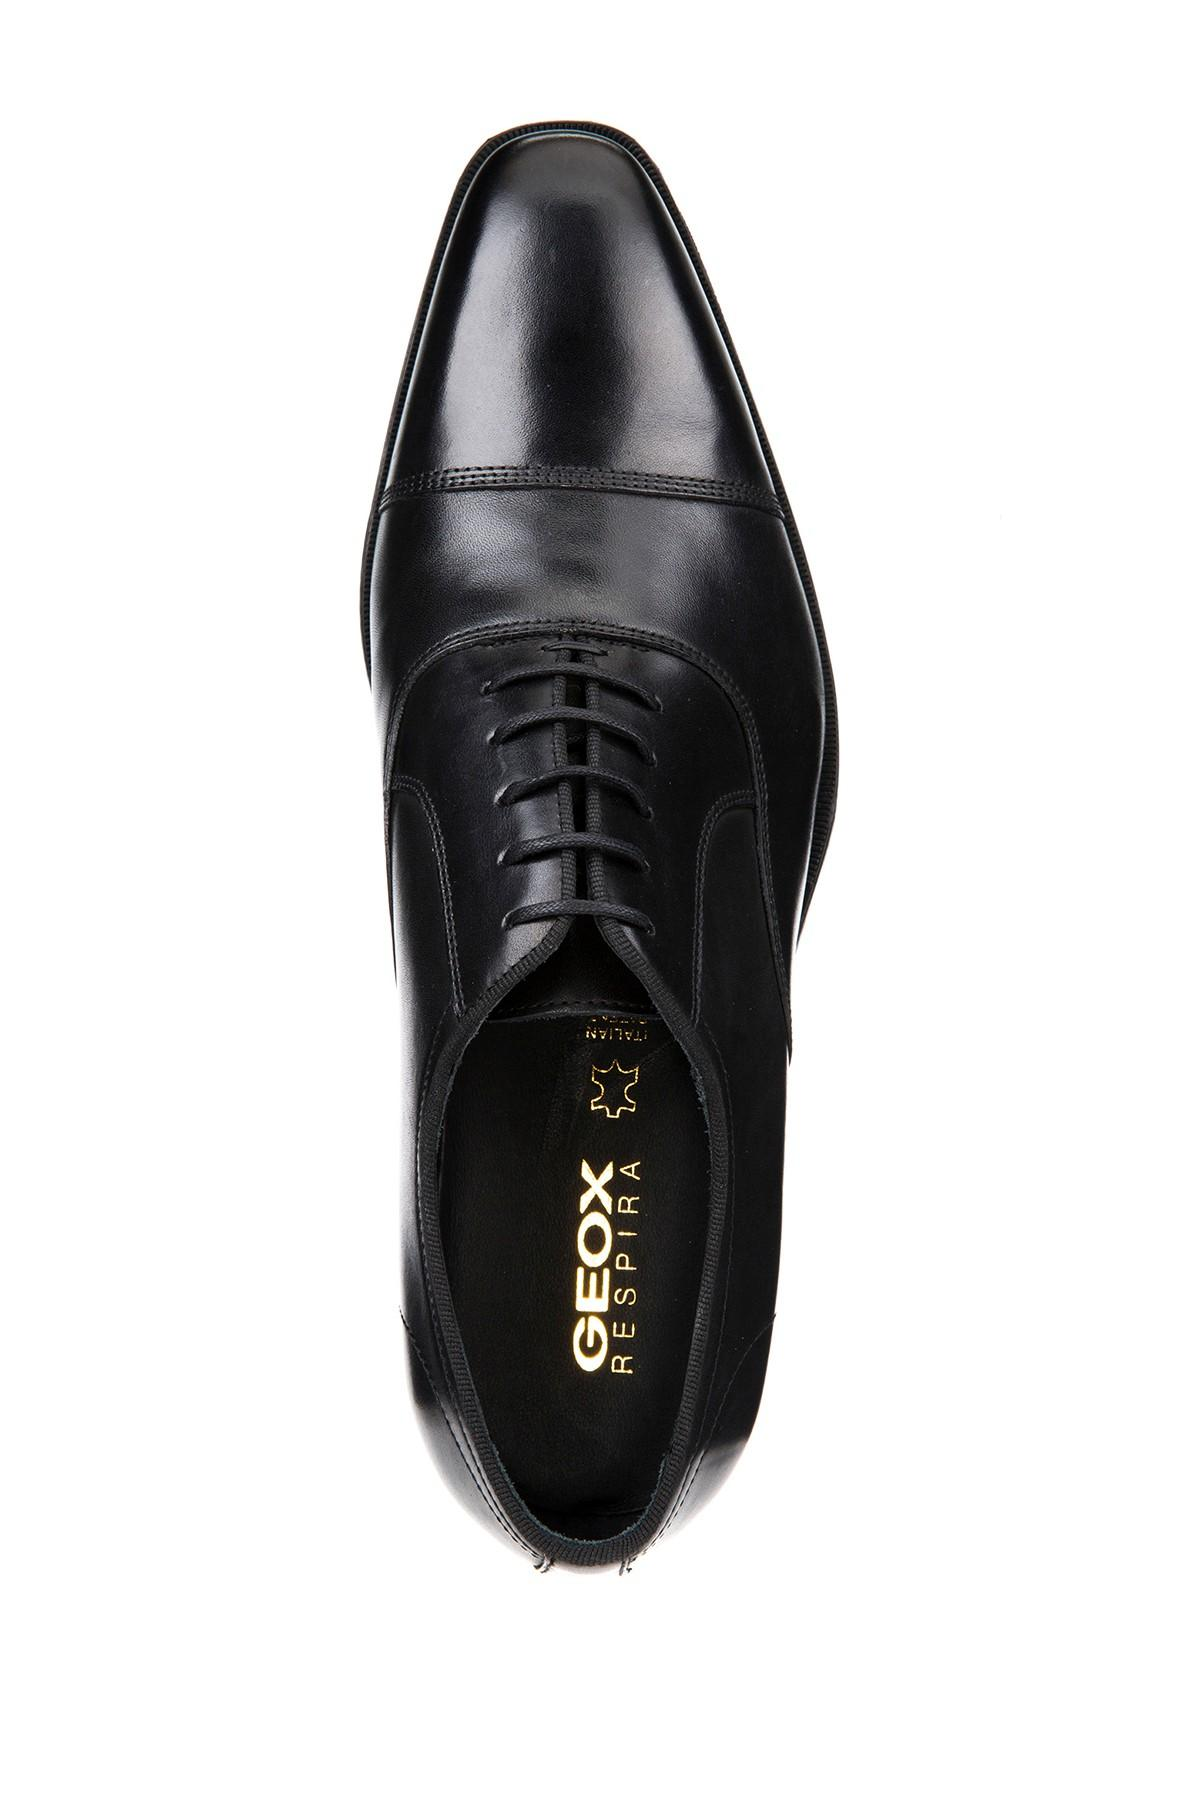 Deportes Discrepancia Incompatible  Geox Newlife Leather Oxford Dress Shoe in Black for Men - Lyst